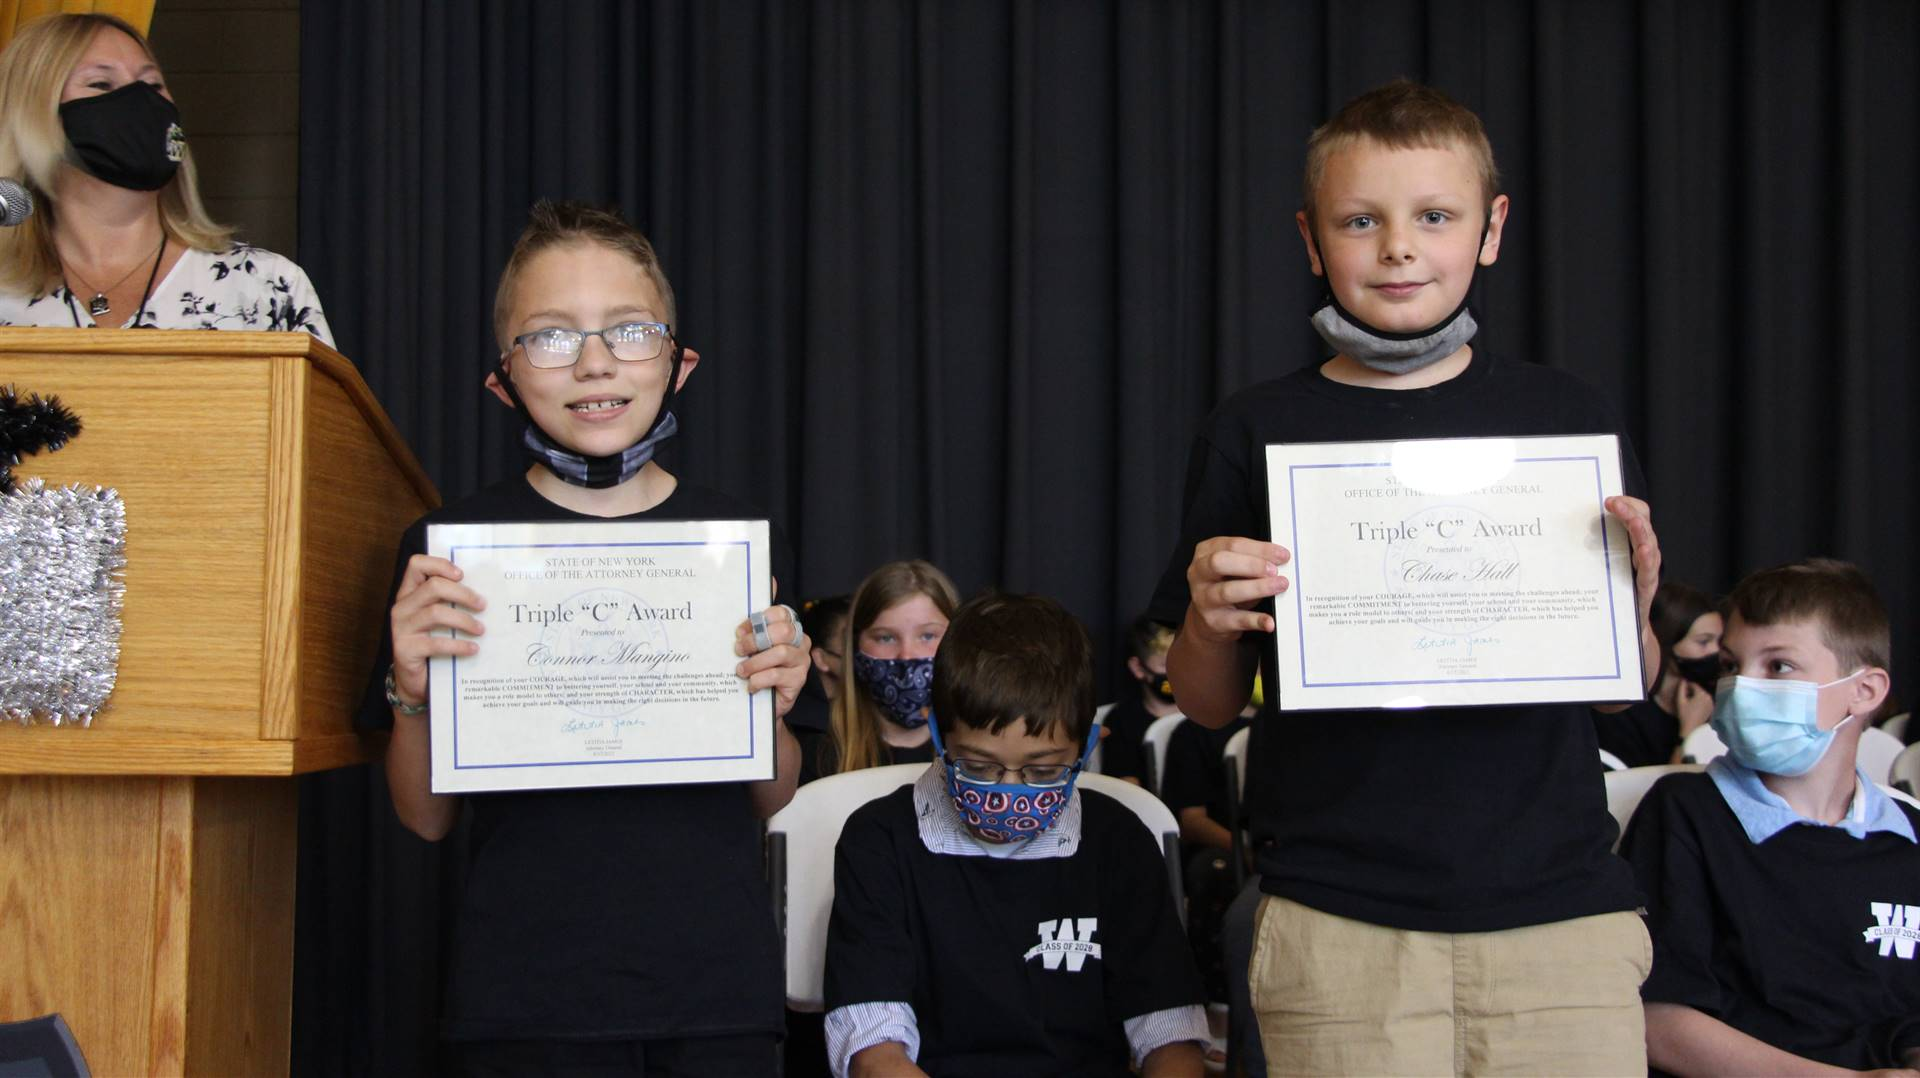 Two young students holding certificates